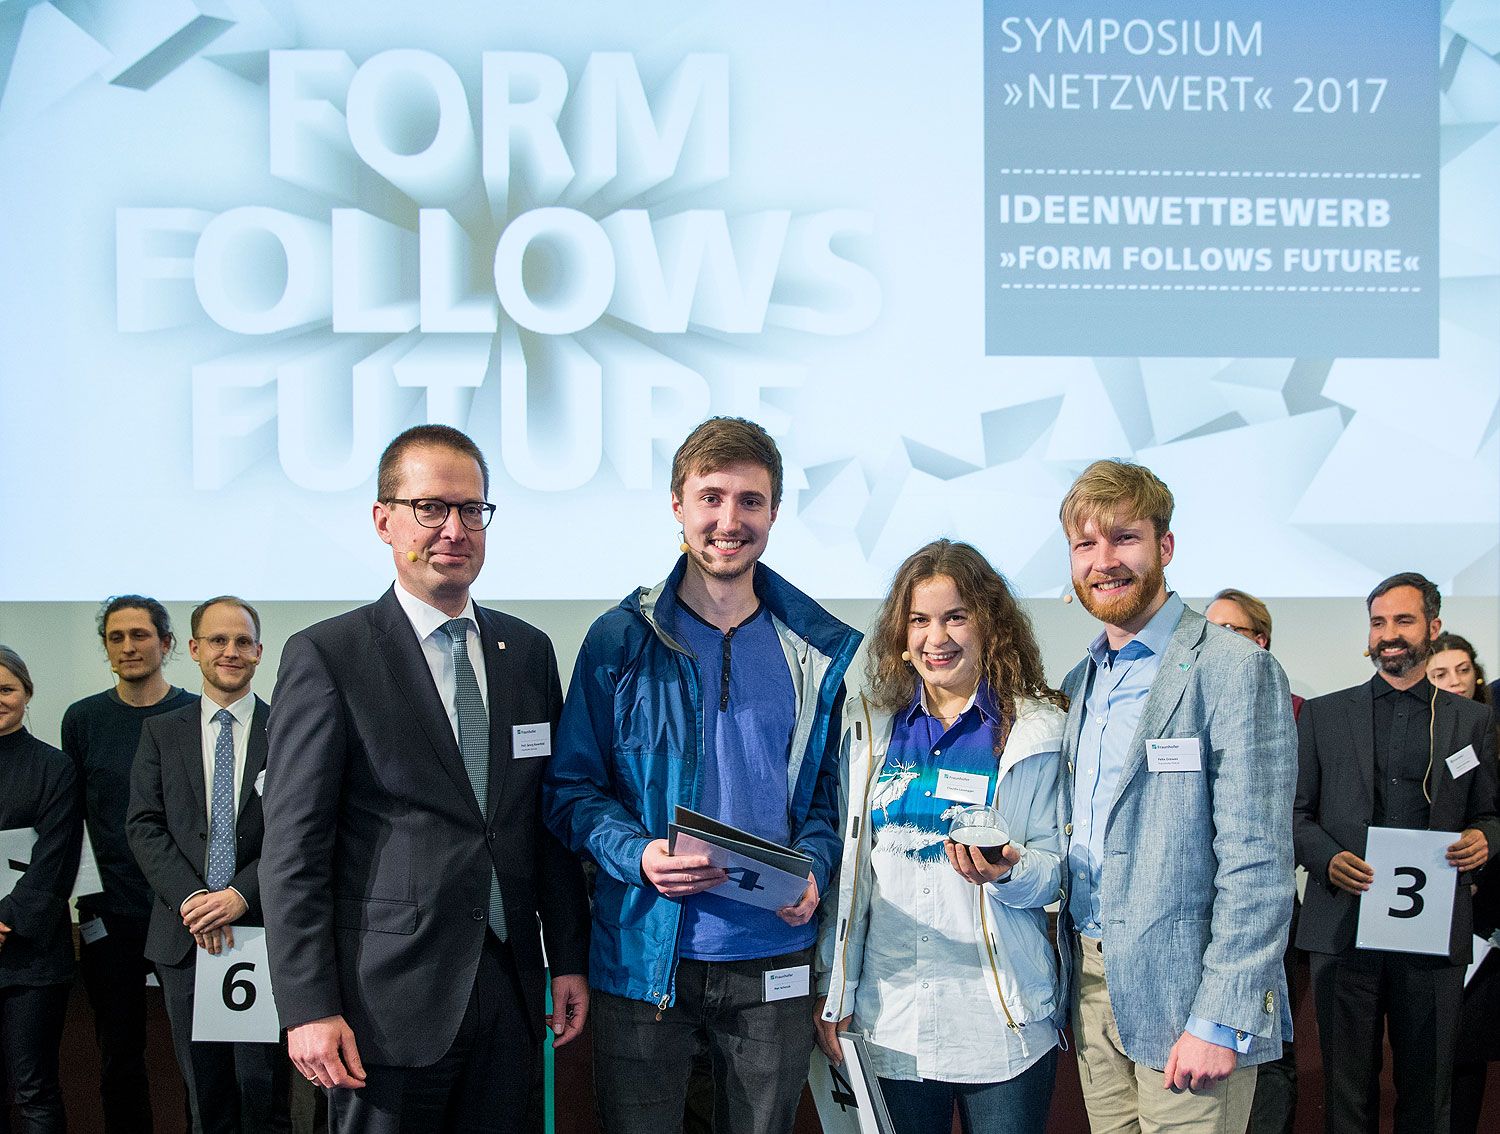 2nd Prize to Claudia Lausegger, Piet Schmidt (UdK) and Felix Drewes (Fraunhofer Fokus) © Marc Müller